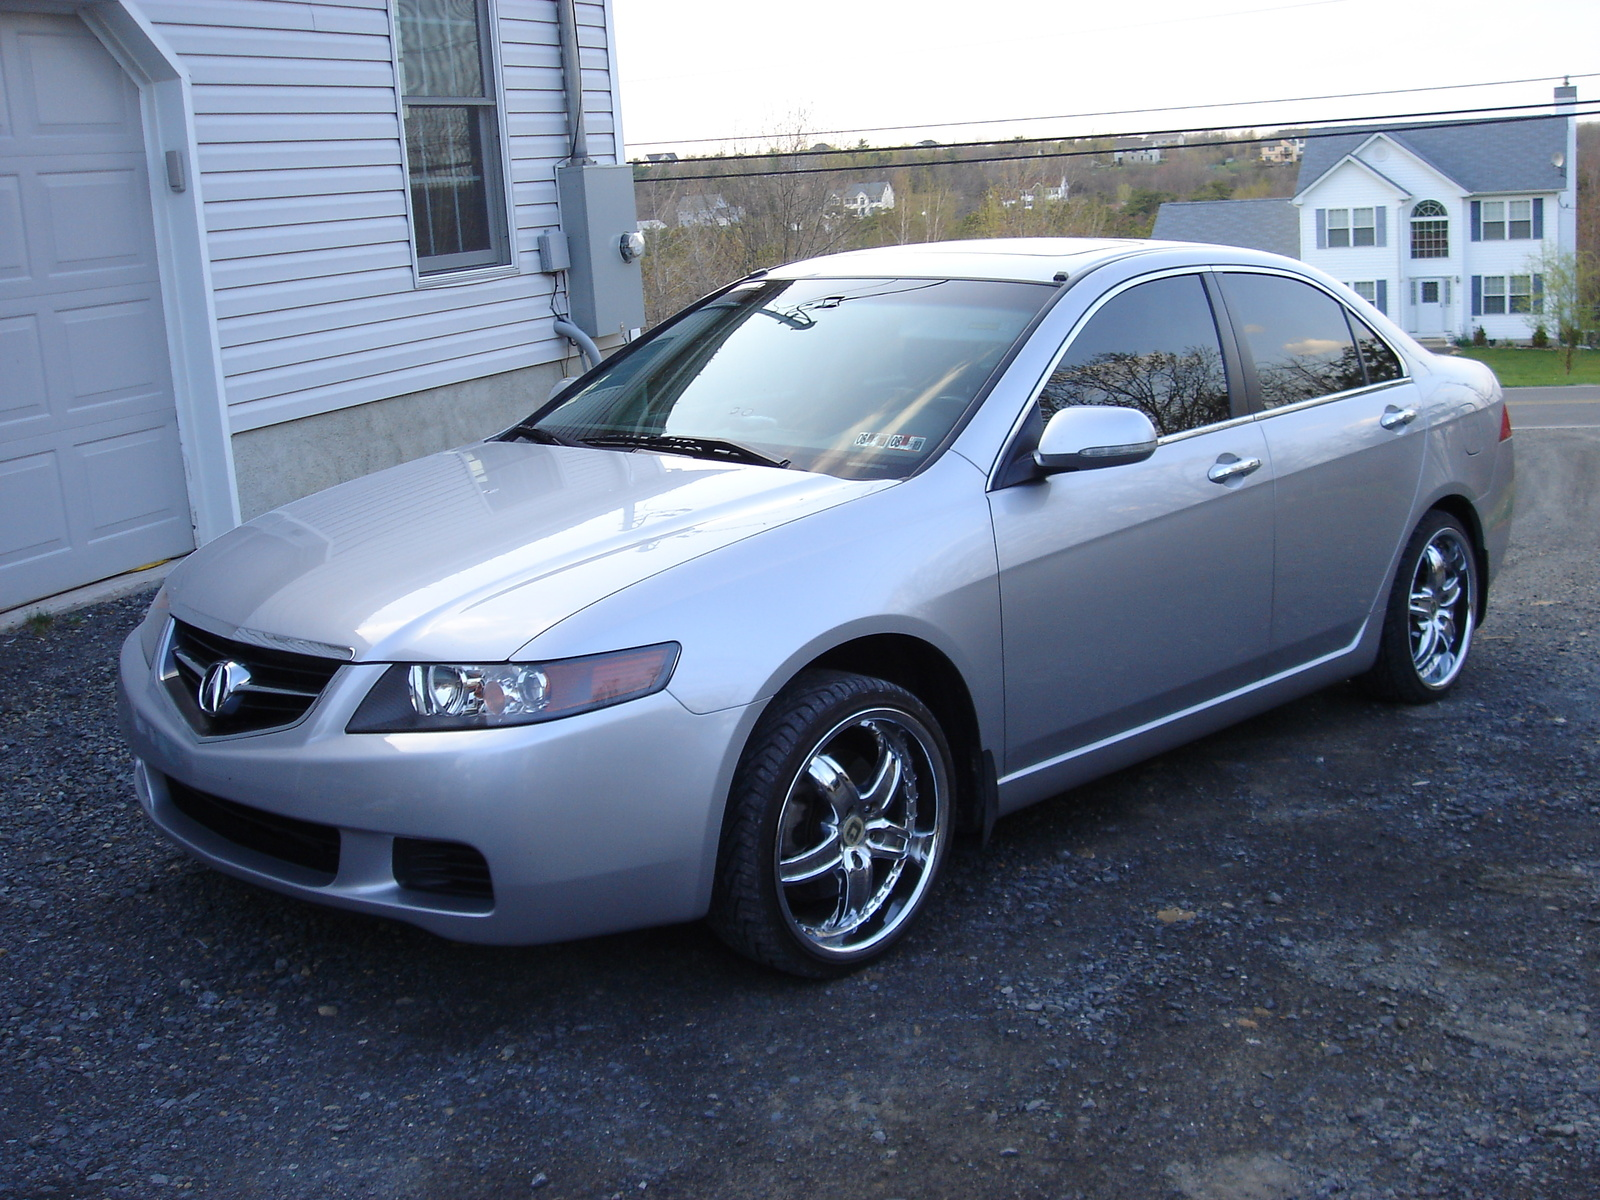 2004 Acura TSX 5-spd w/ Navigation picture